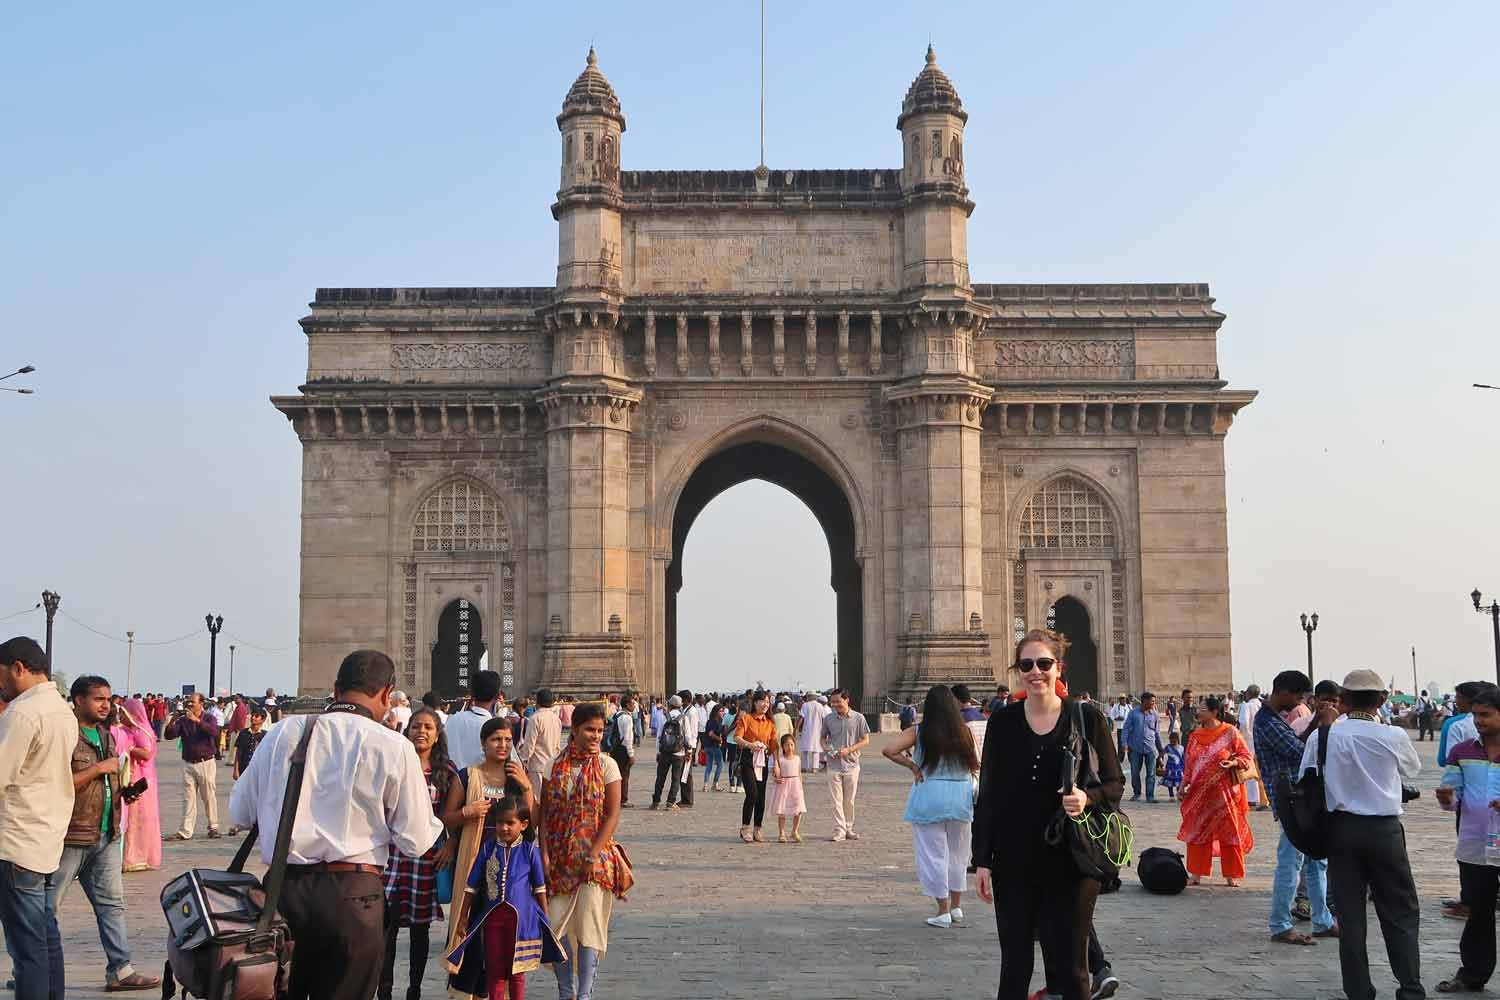 Fotoshooting am Gate of Inida in Mumbai - Weltreise Highlight